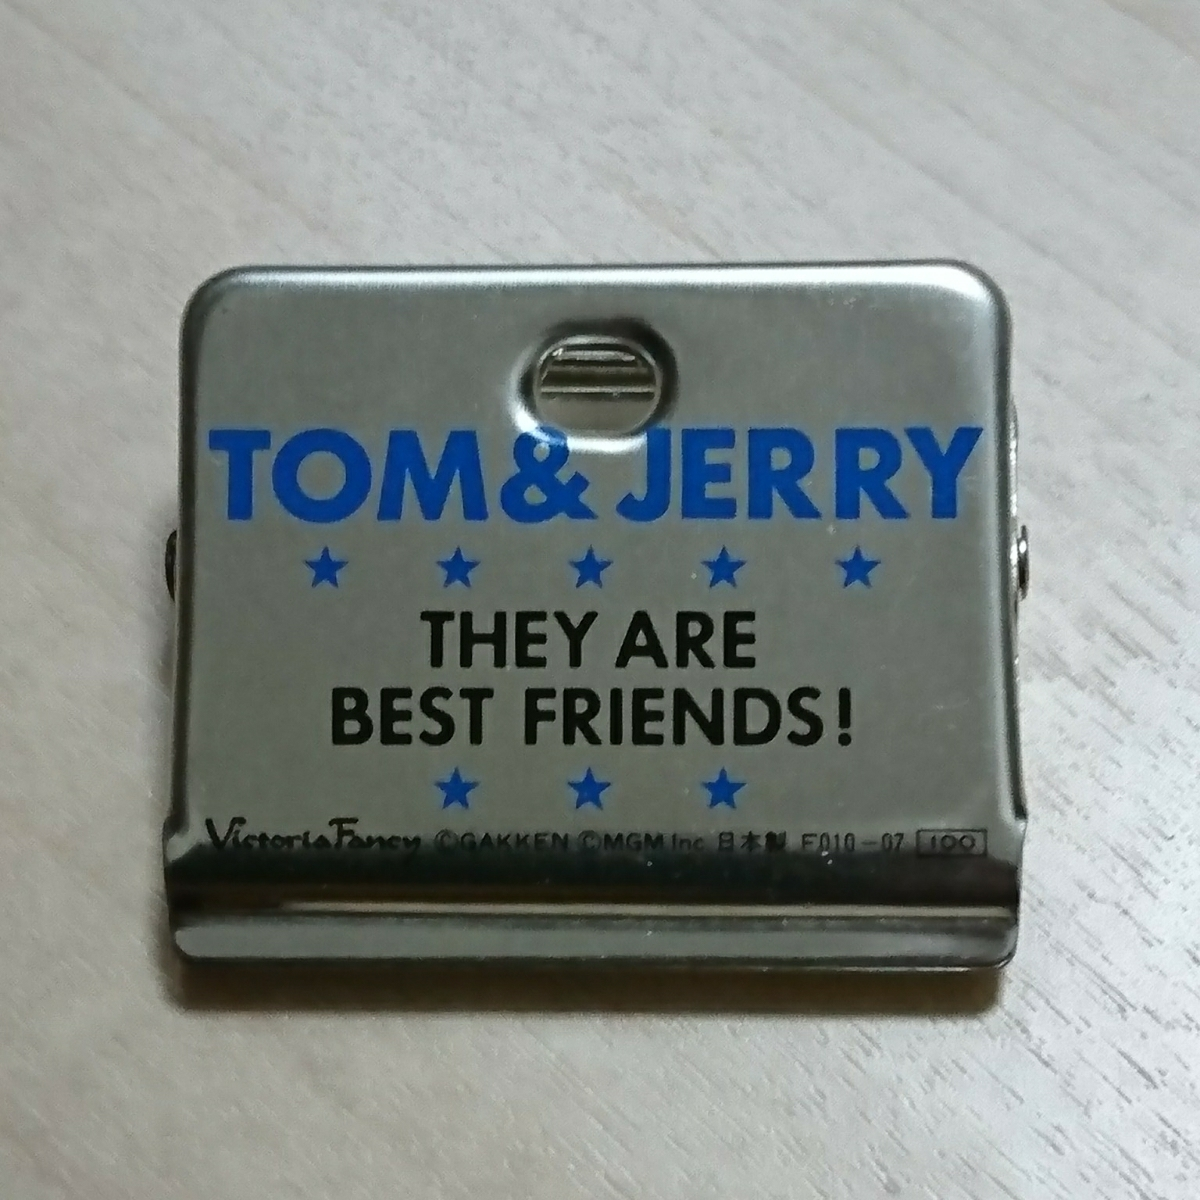 ■『Tom&jerry クリップ』1個。金属製。■裏面「Tom&jerry They are Best friends」と有ります。_画像2